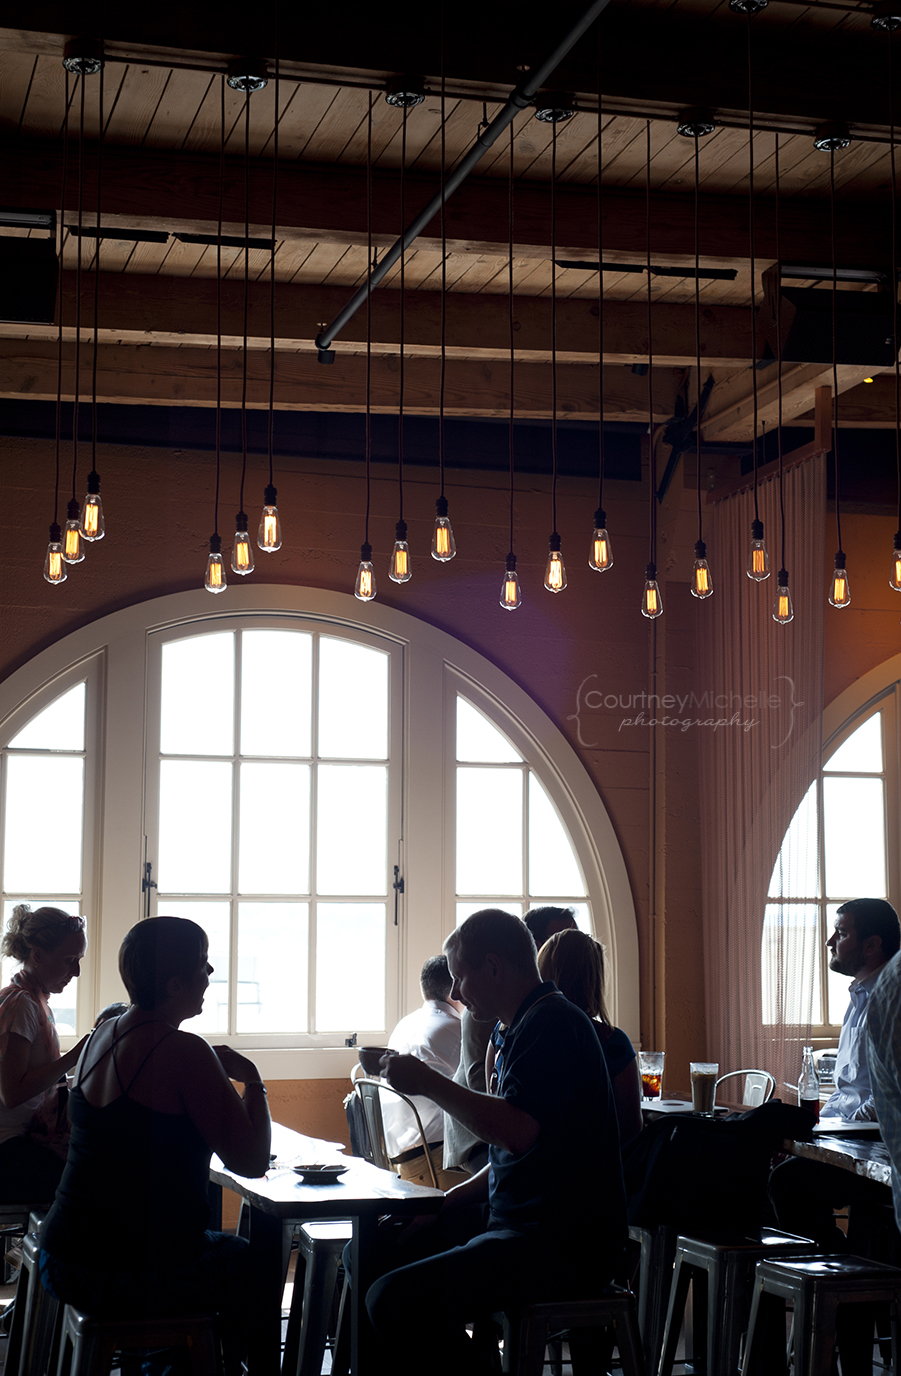 coffee-shop-seattle-chicago-food-lifestyle-photography-by-courtney-laper.jpg